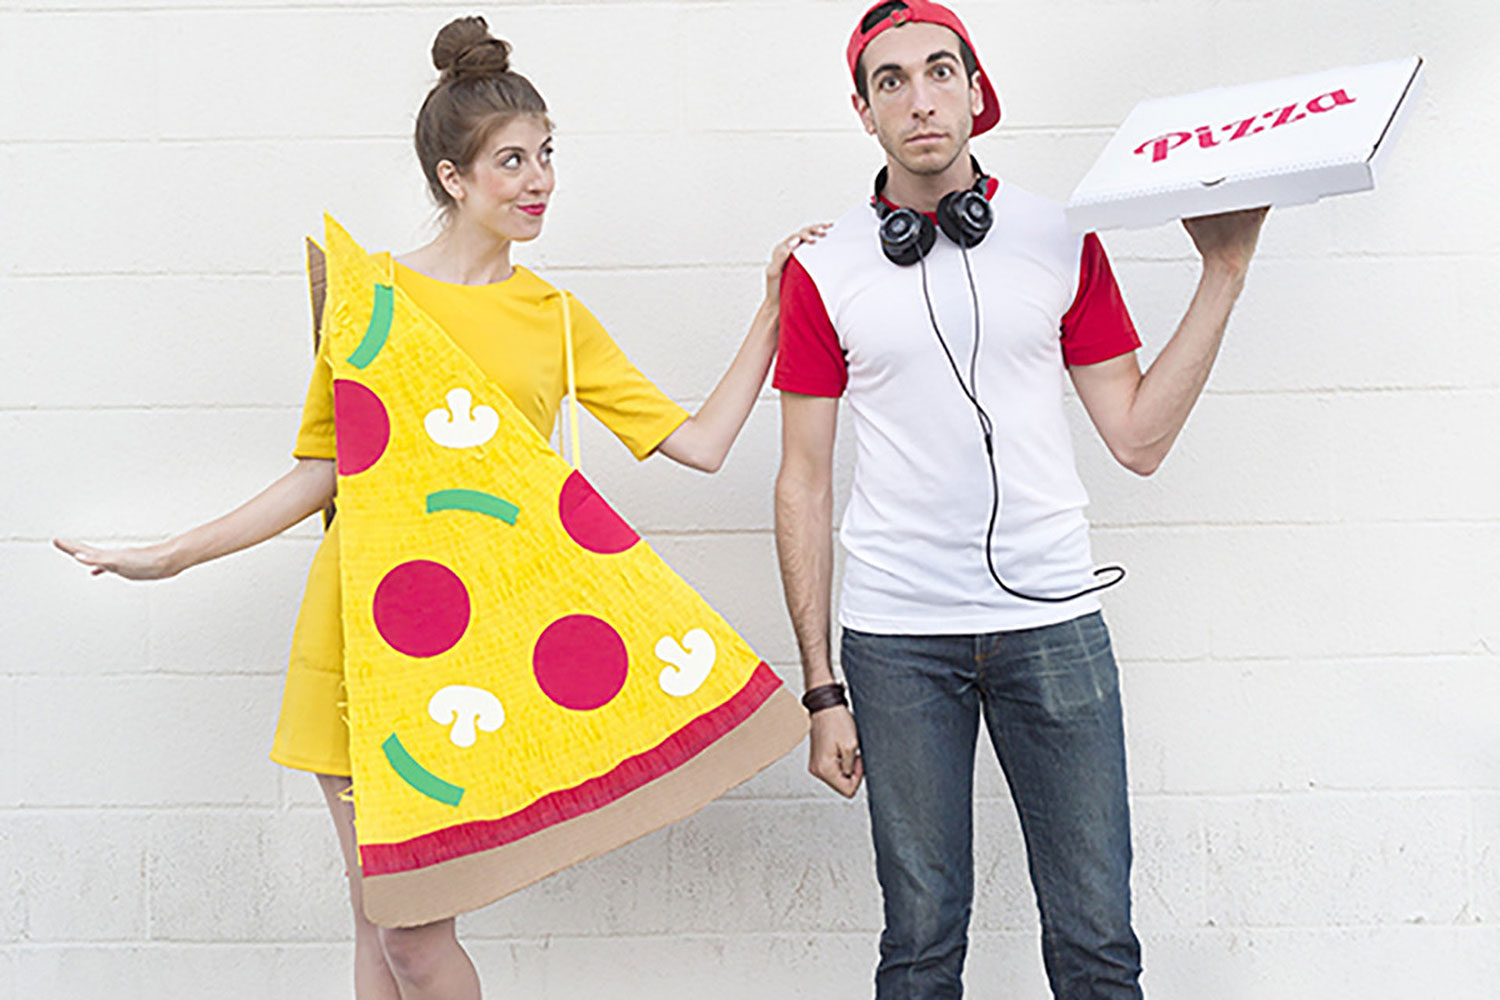 Go as a pizza slice and a delivery boy for a couple's costume